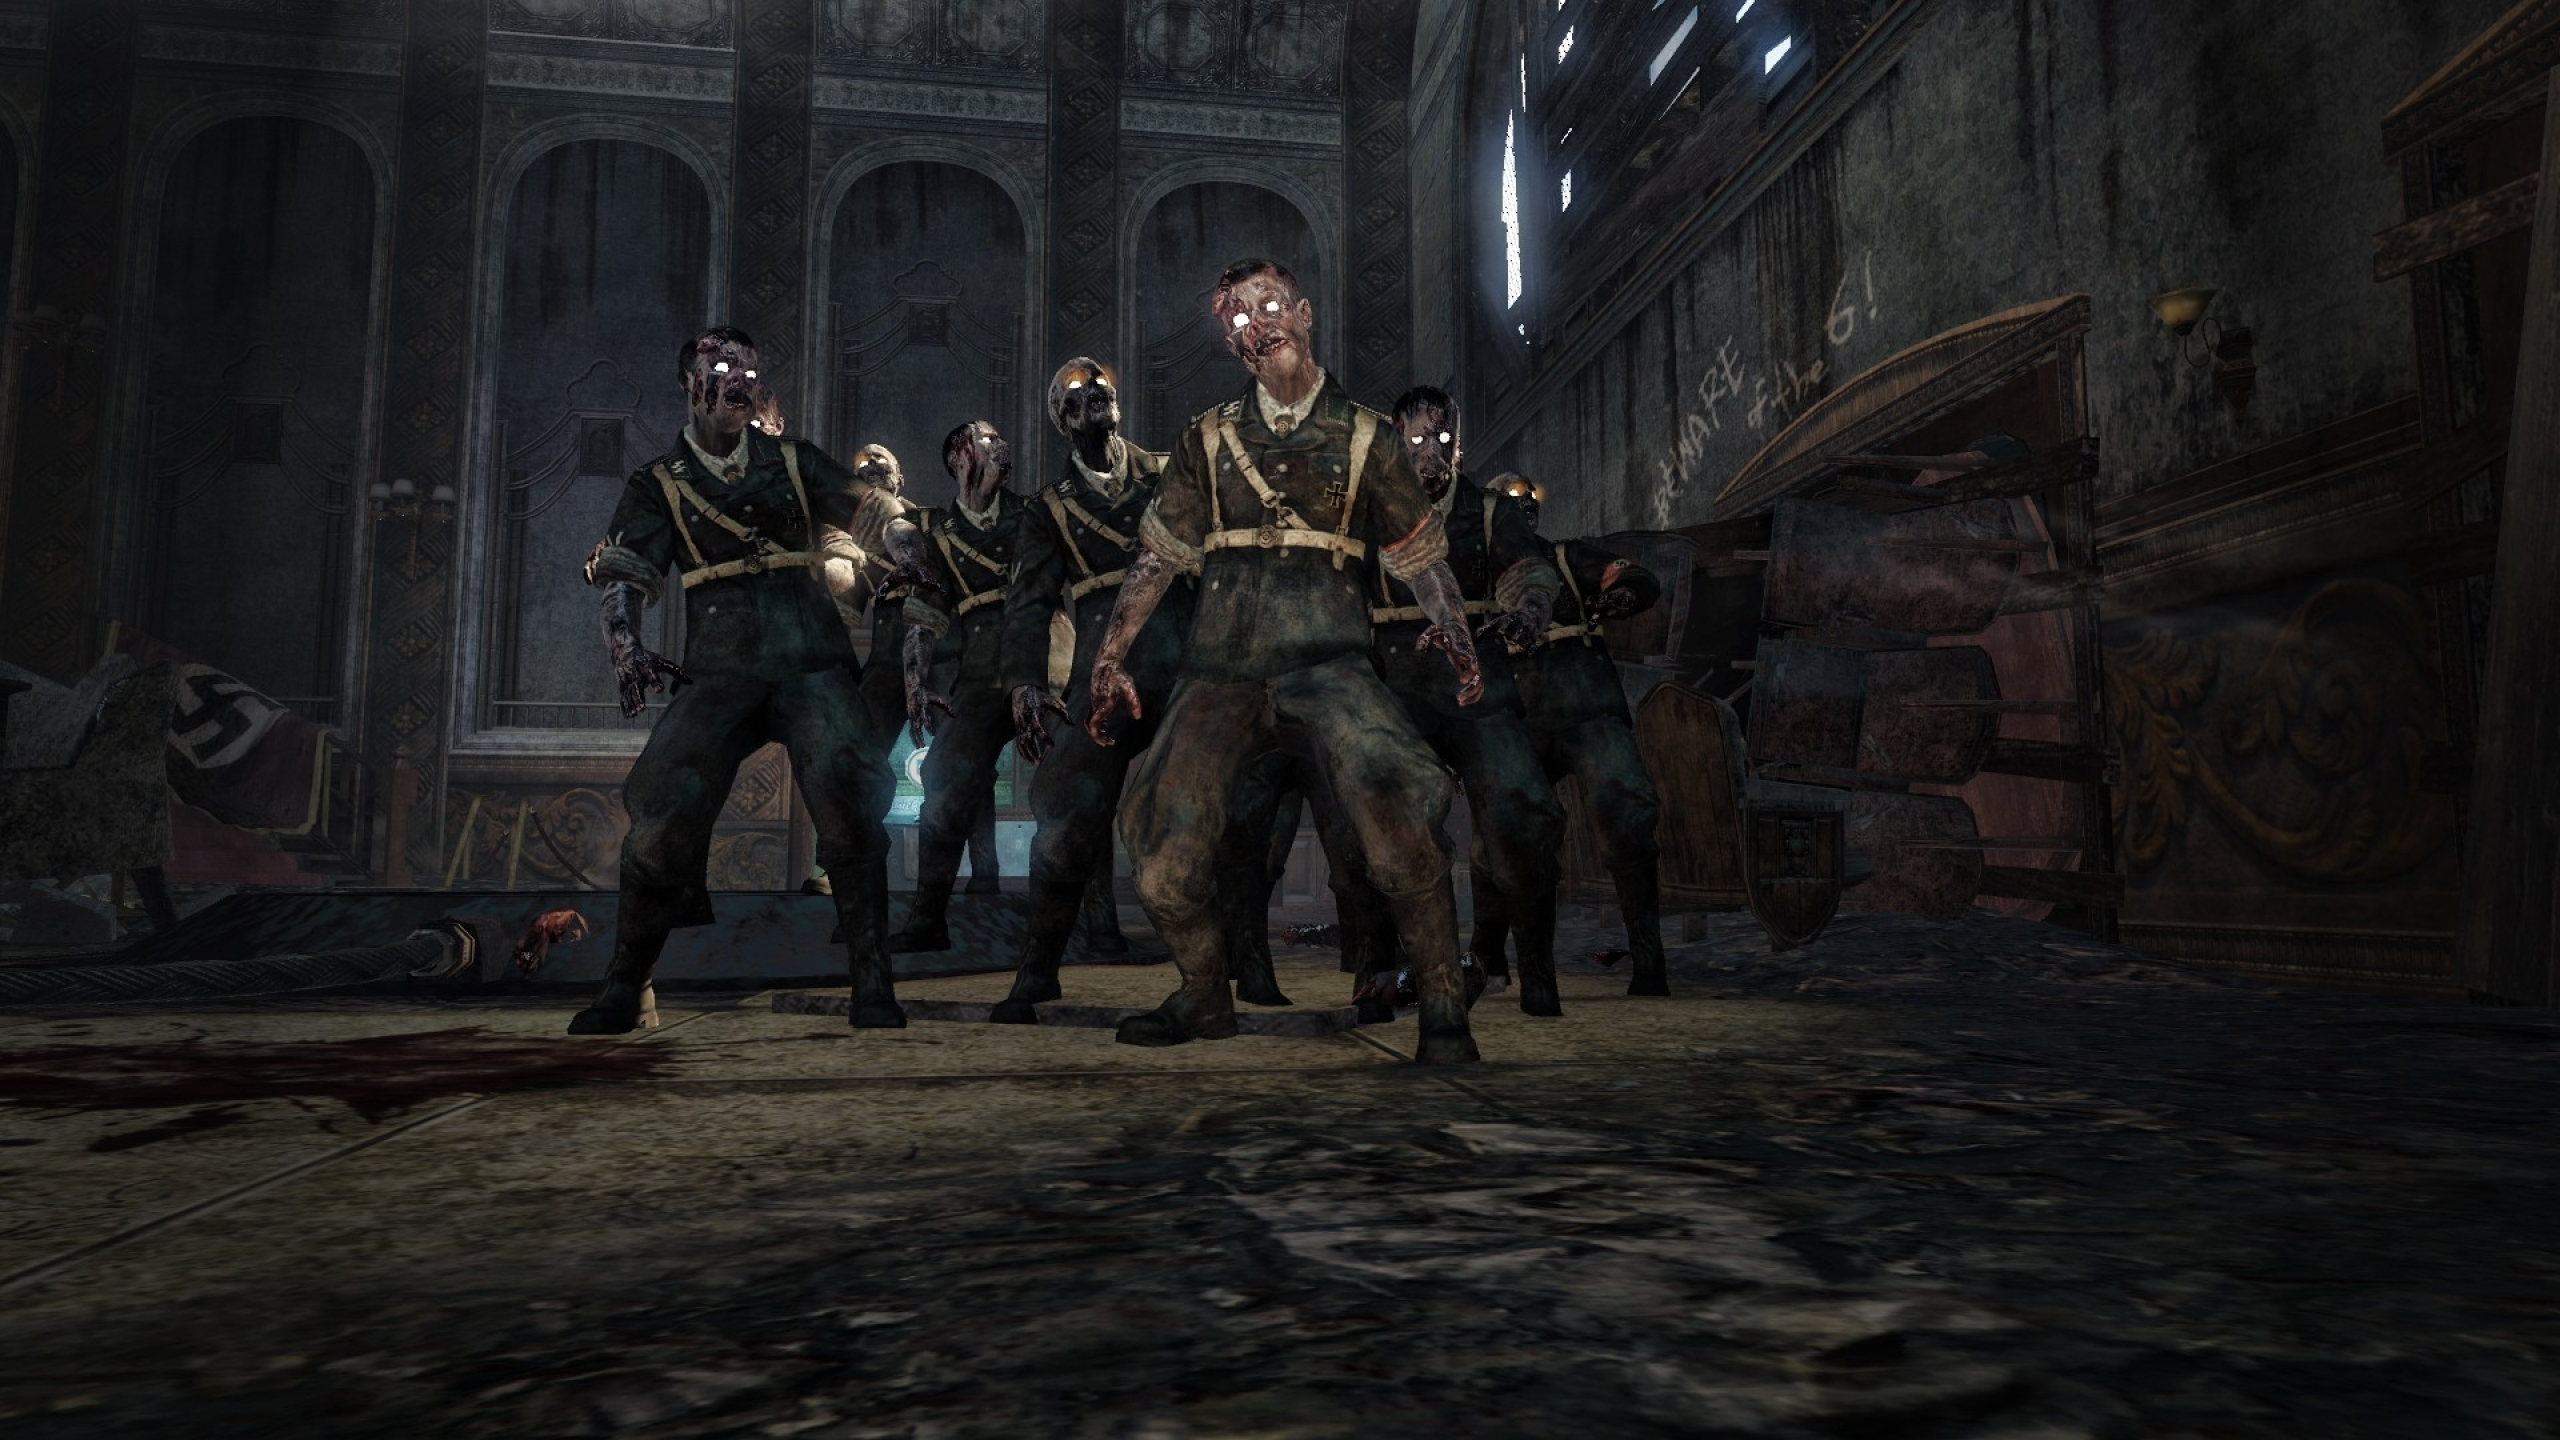 Free Download Zombies Call Of Duty Black Ops Best Wallpaperstop